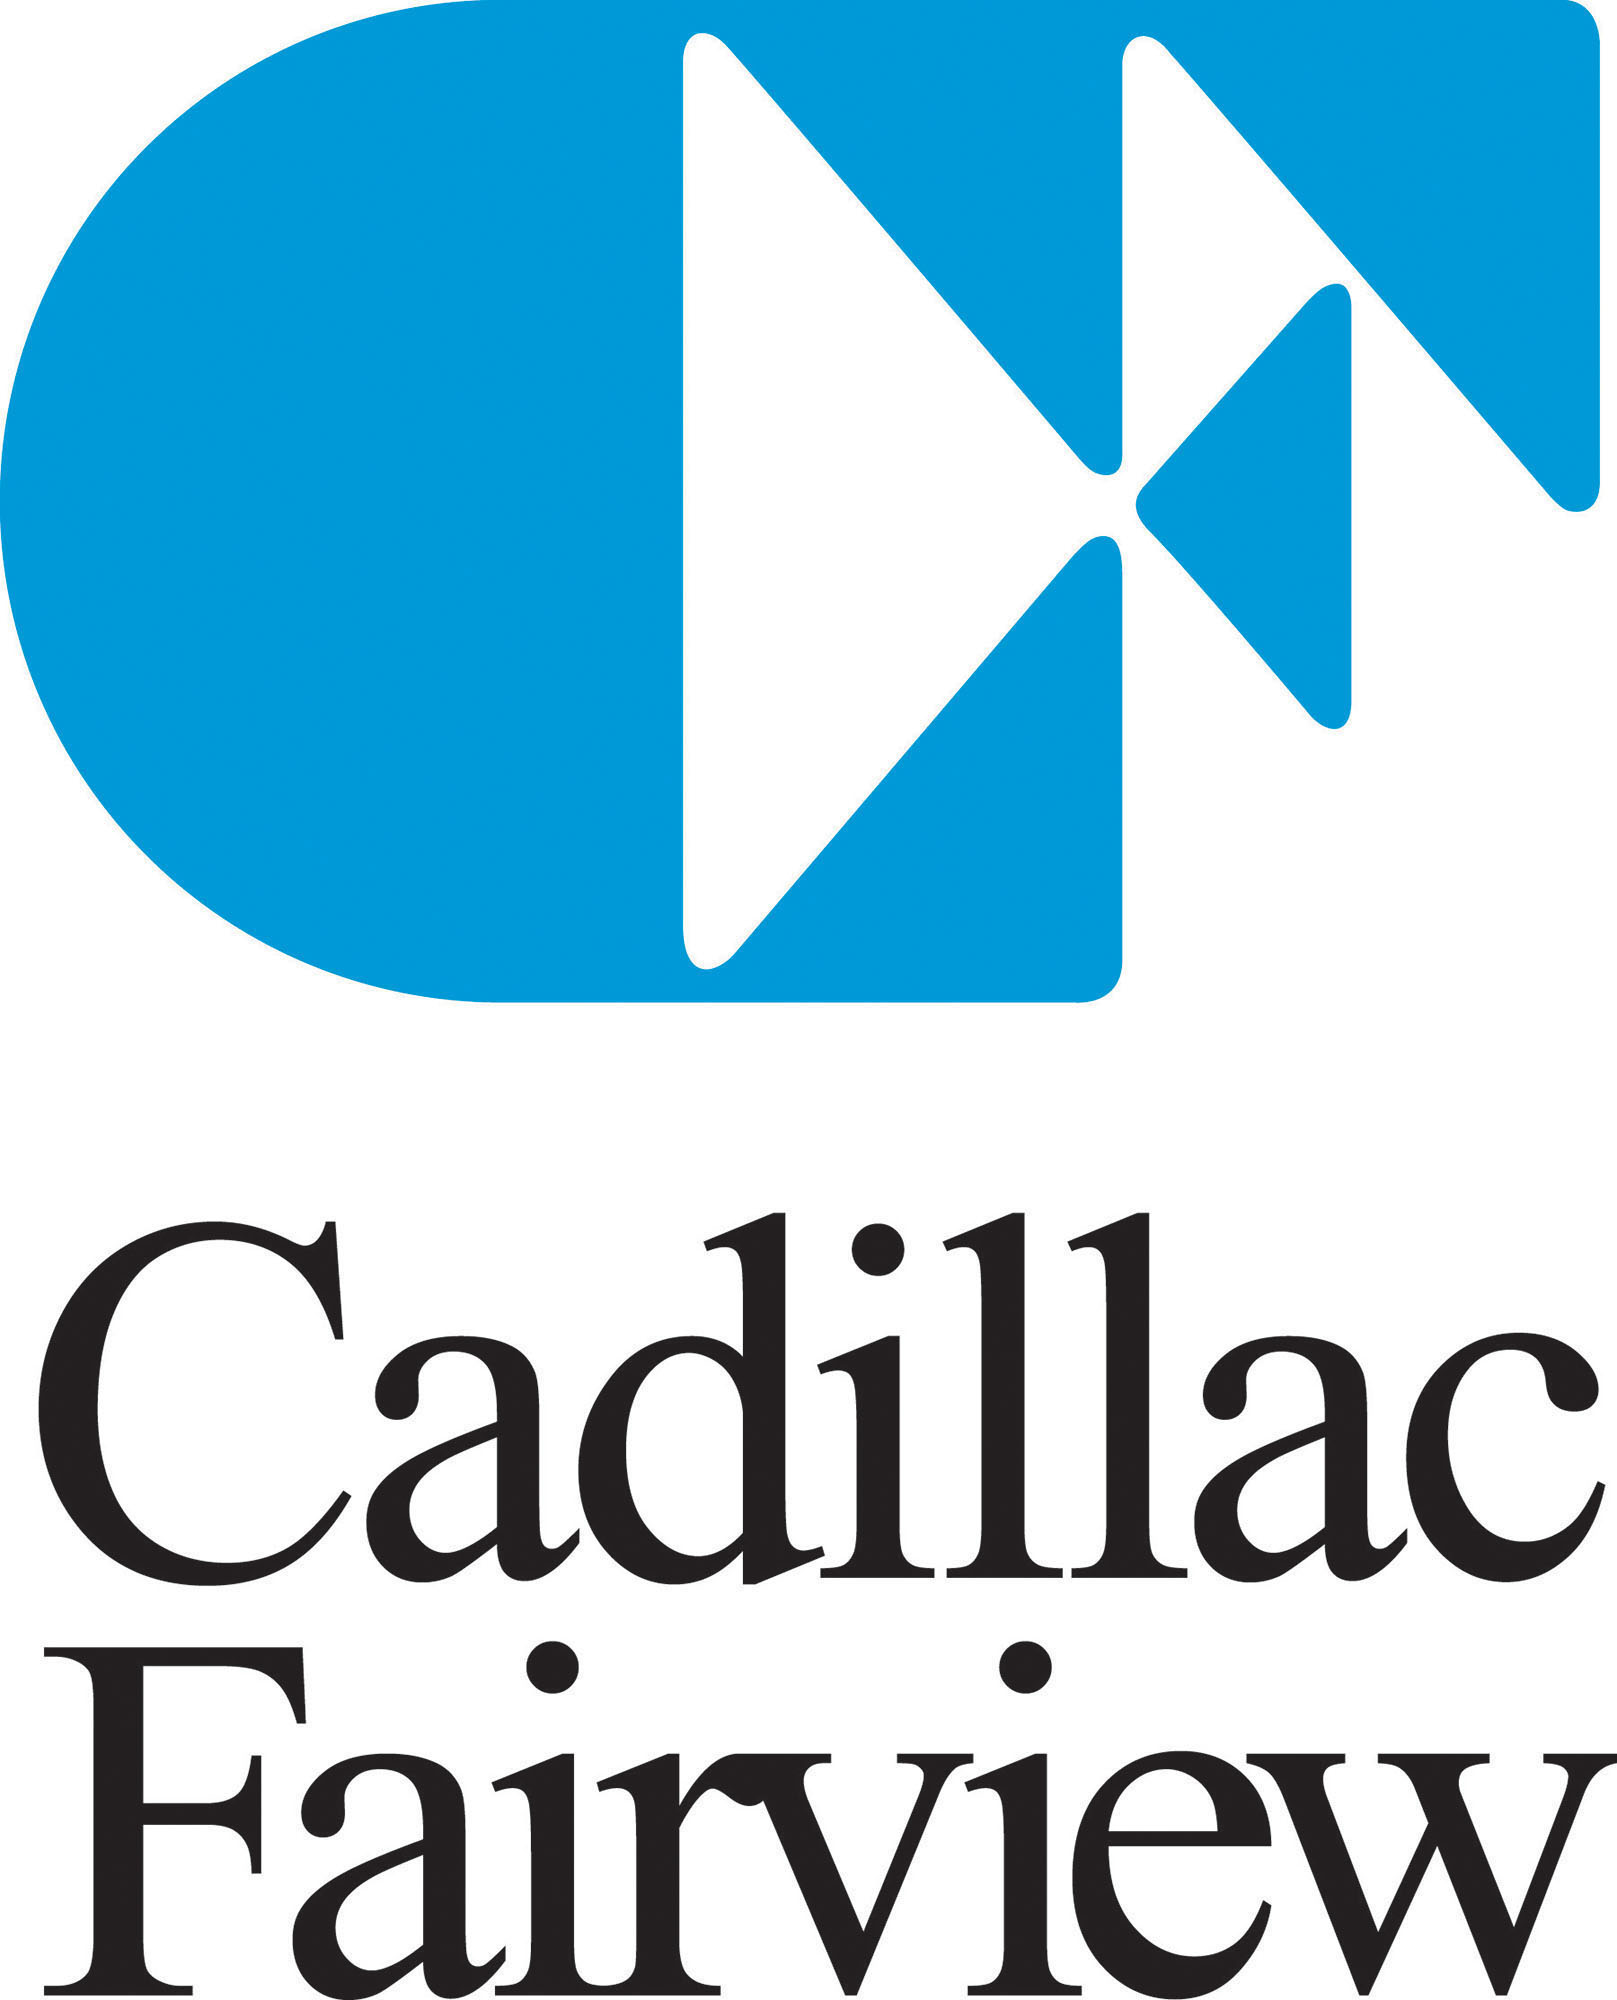 Cadillac Fairview logo